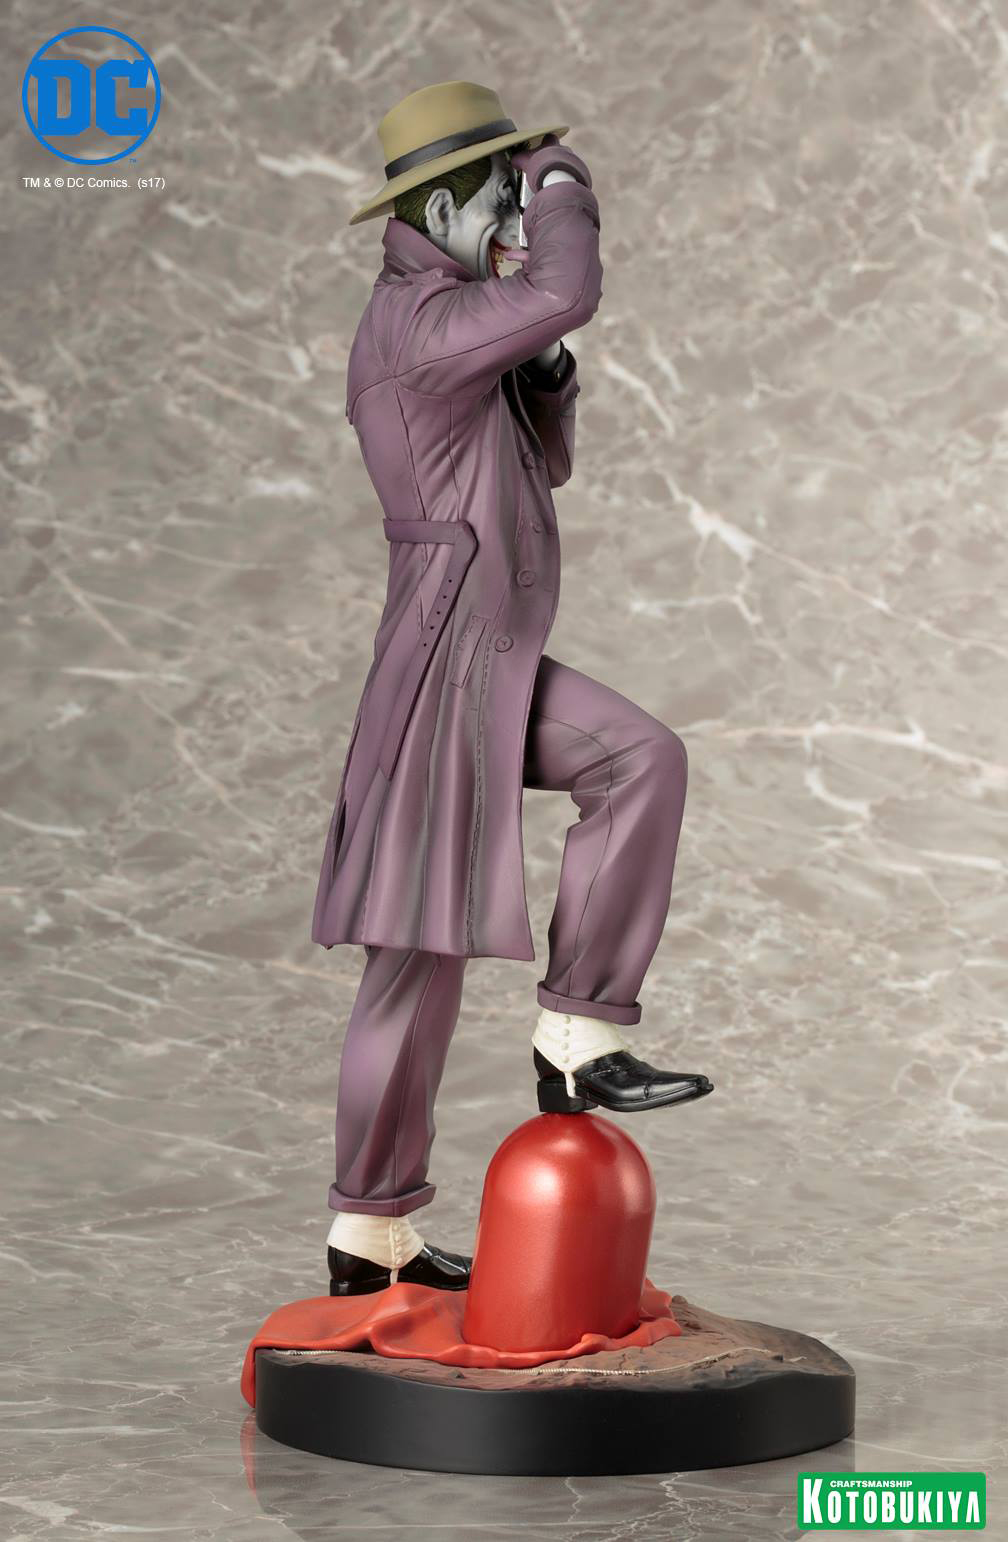 kotobukiya-joker-the-killing-joke-statue-5